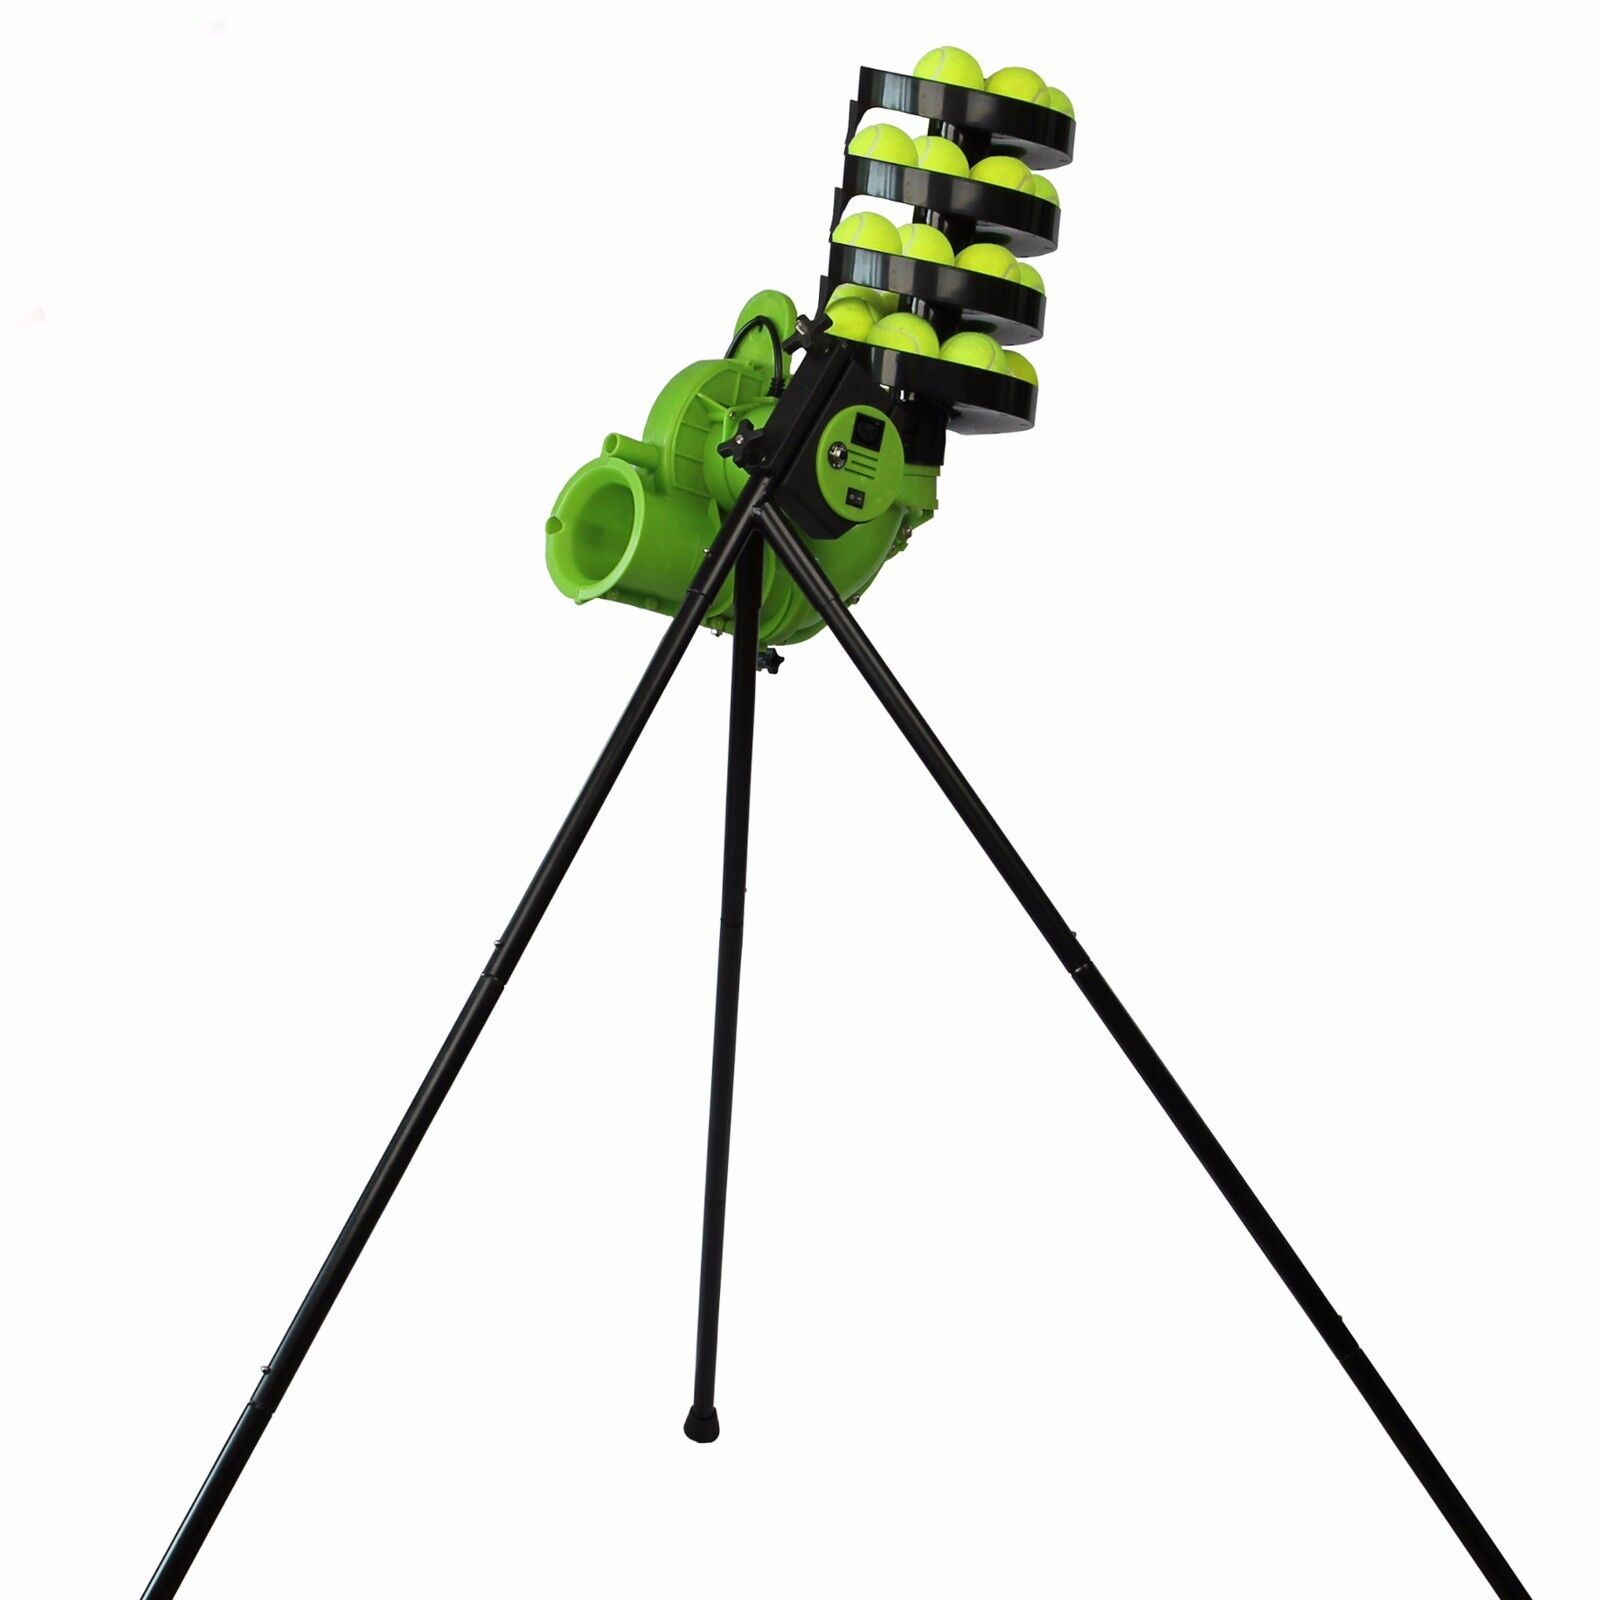 Baseliner Slam Tennis Ball Machine - Best For Home Courts & Training Beginners